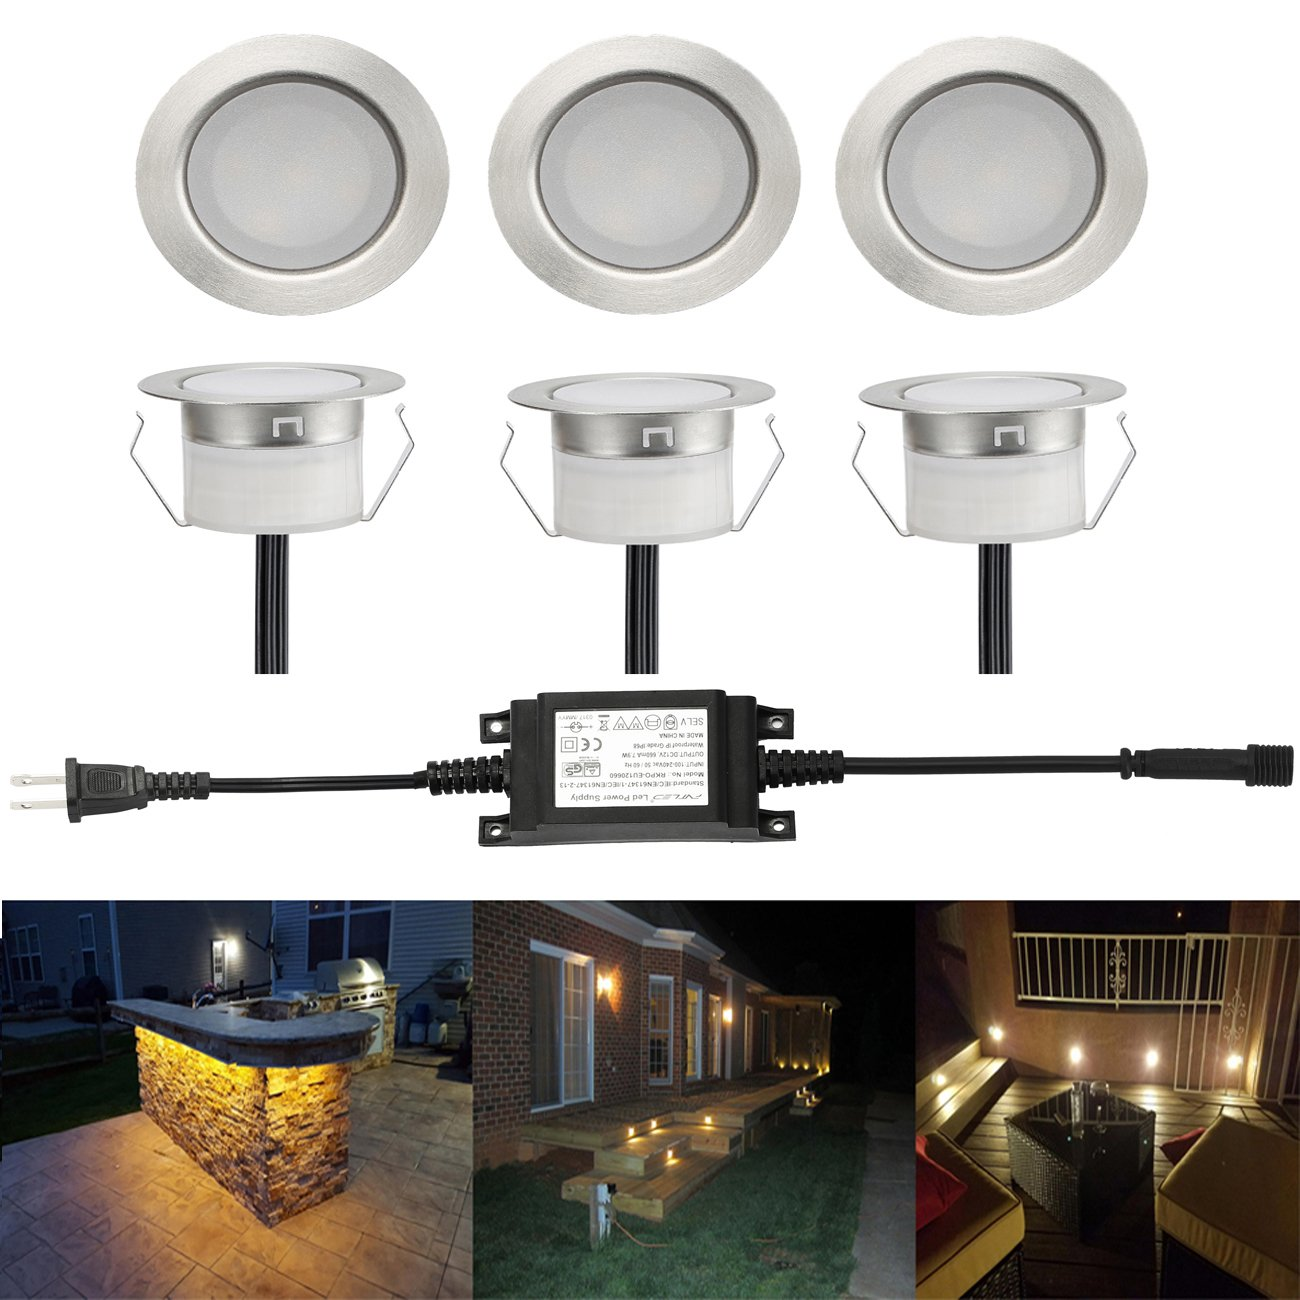 6 Pack LED Deck Lights Kits 1-3/4'' Outdoor Garden Yard Decoration In-ground Light Pathway Patio LED Step Lighting, Warm White